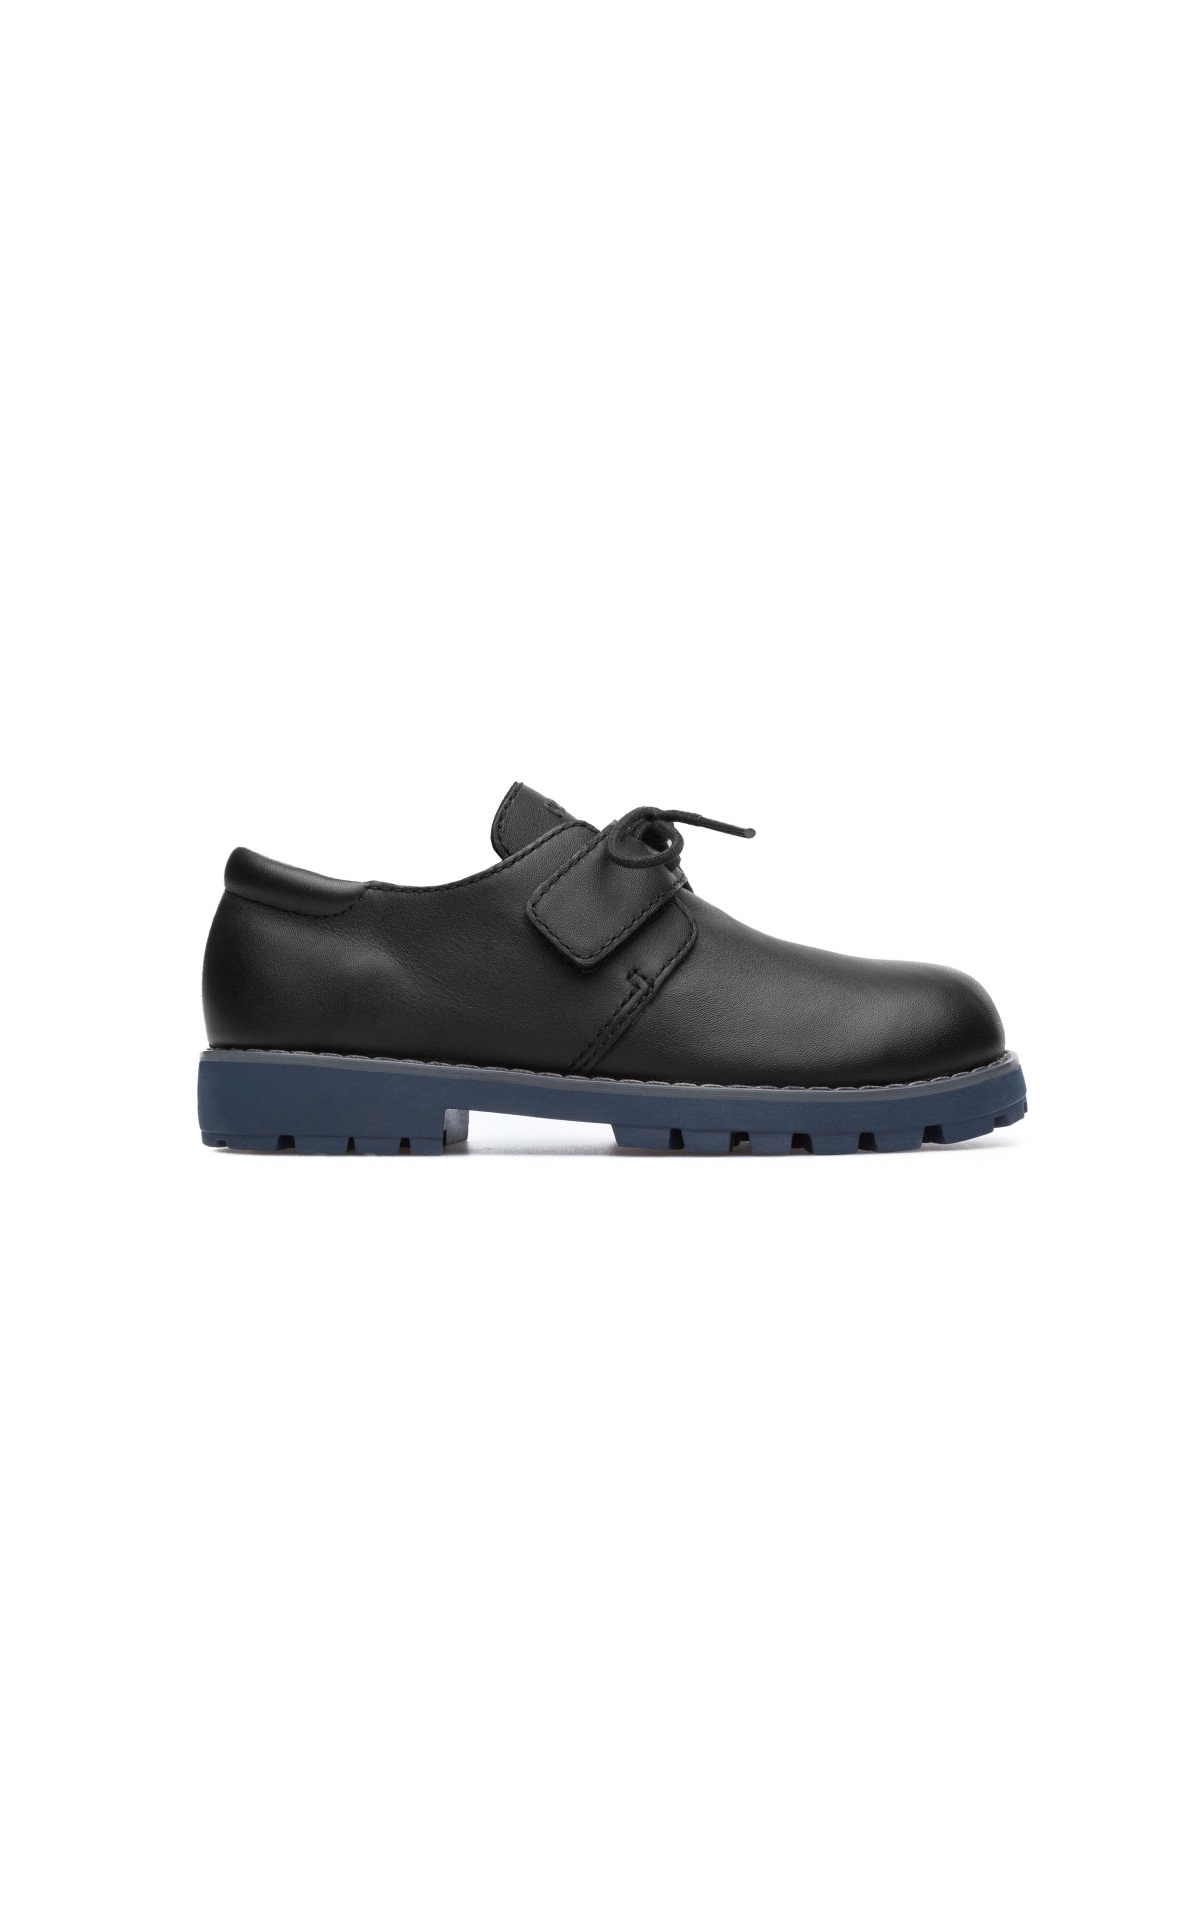 Black leather shoes children Camper